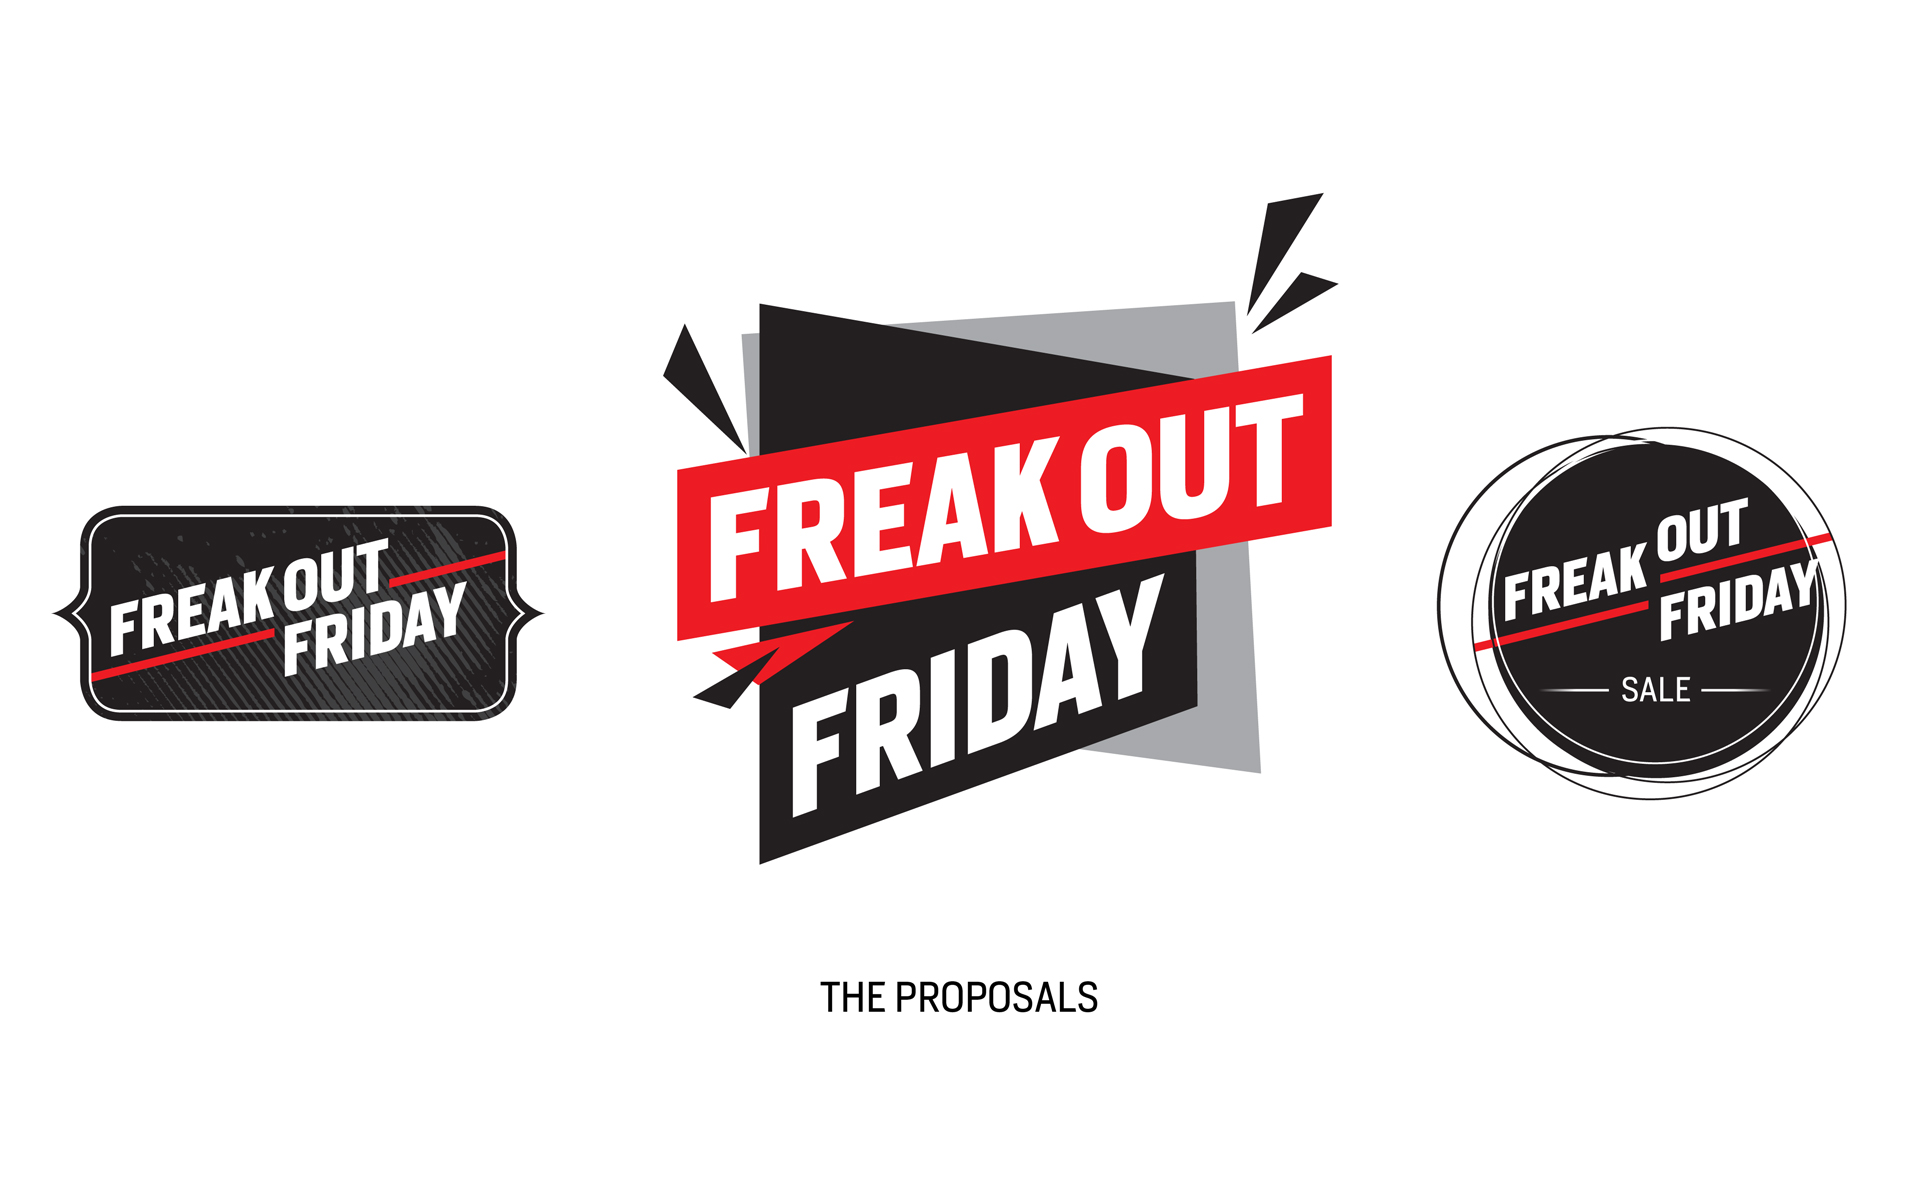 "Saleskampagne ""Freakout Friday"", Bayer 04 Leverkusen, Markenkommunikation, Corporate Design, Keyvisual Varianten"